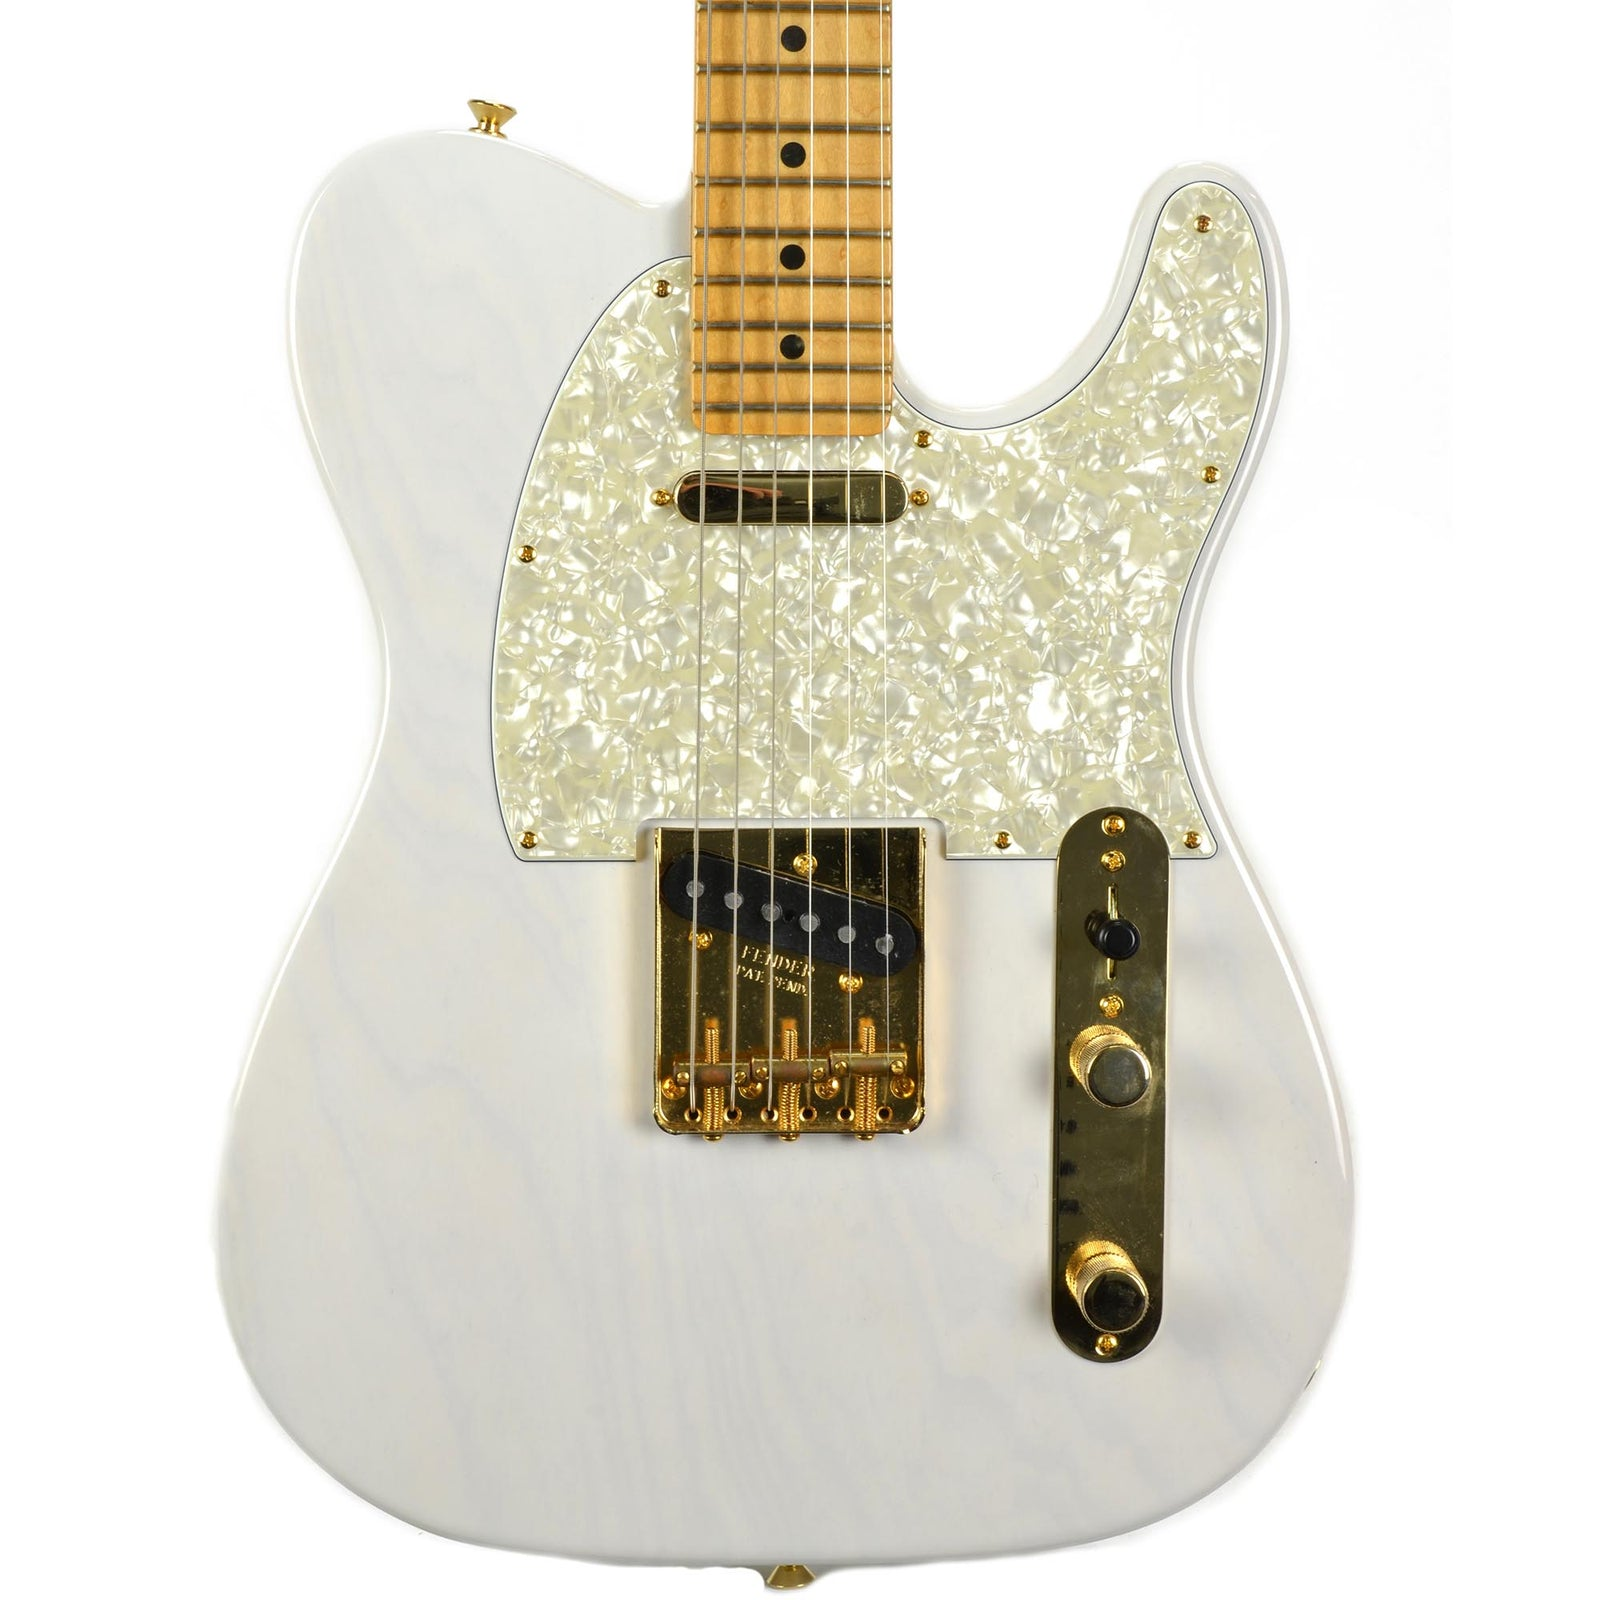 Fender Limited Edition Select Light Ash Telecaster - White Blonde - Used - Image: 1